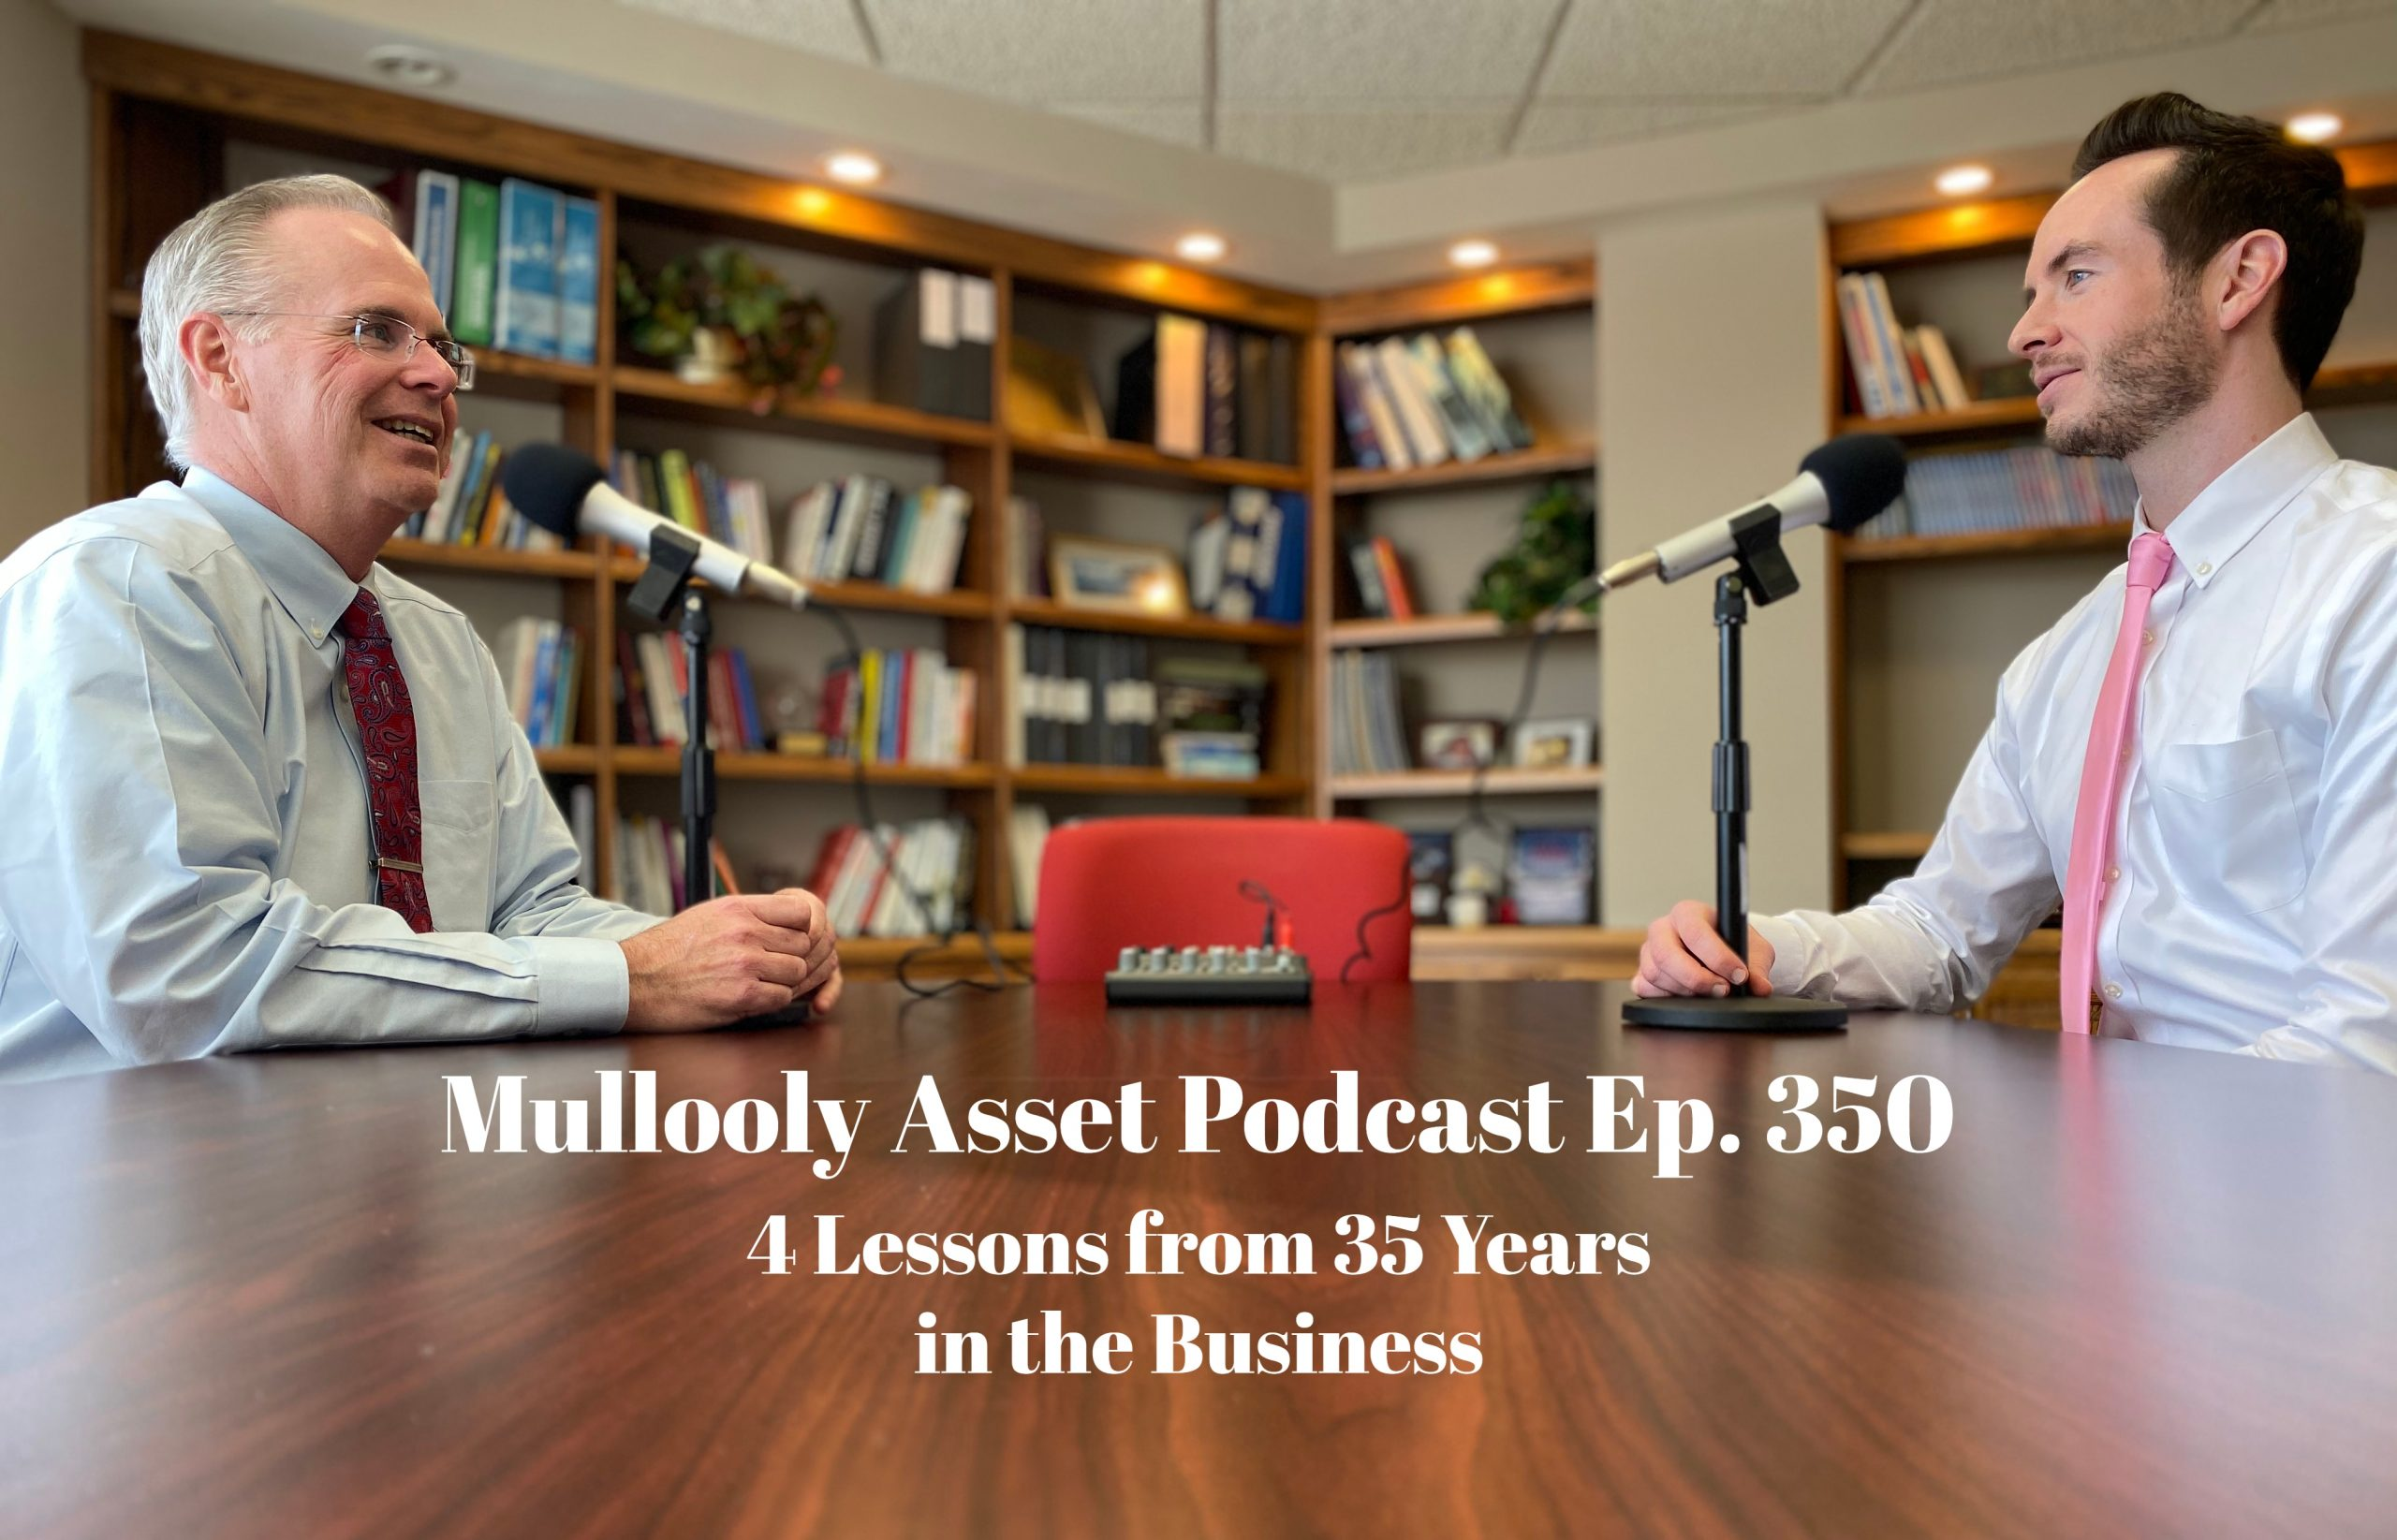 4 Lessons 35 Years in the Business